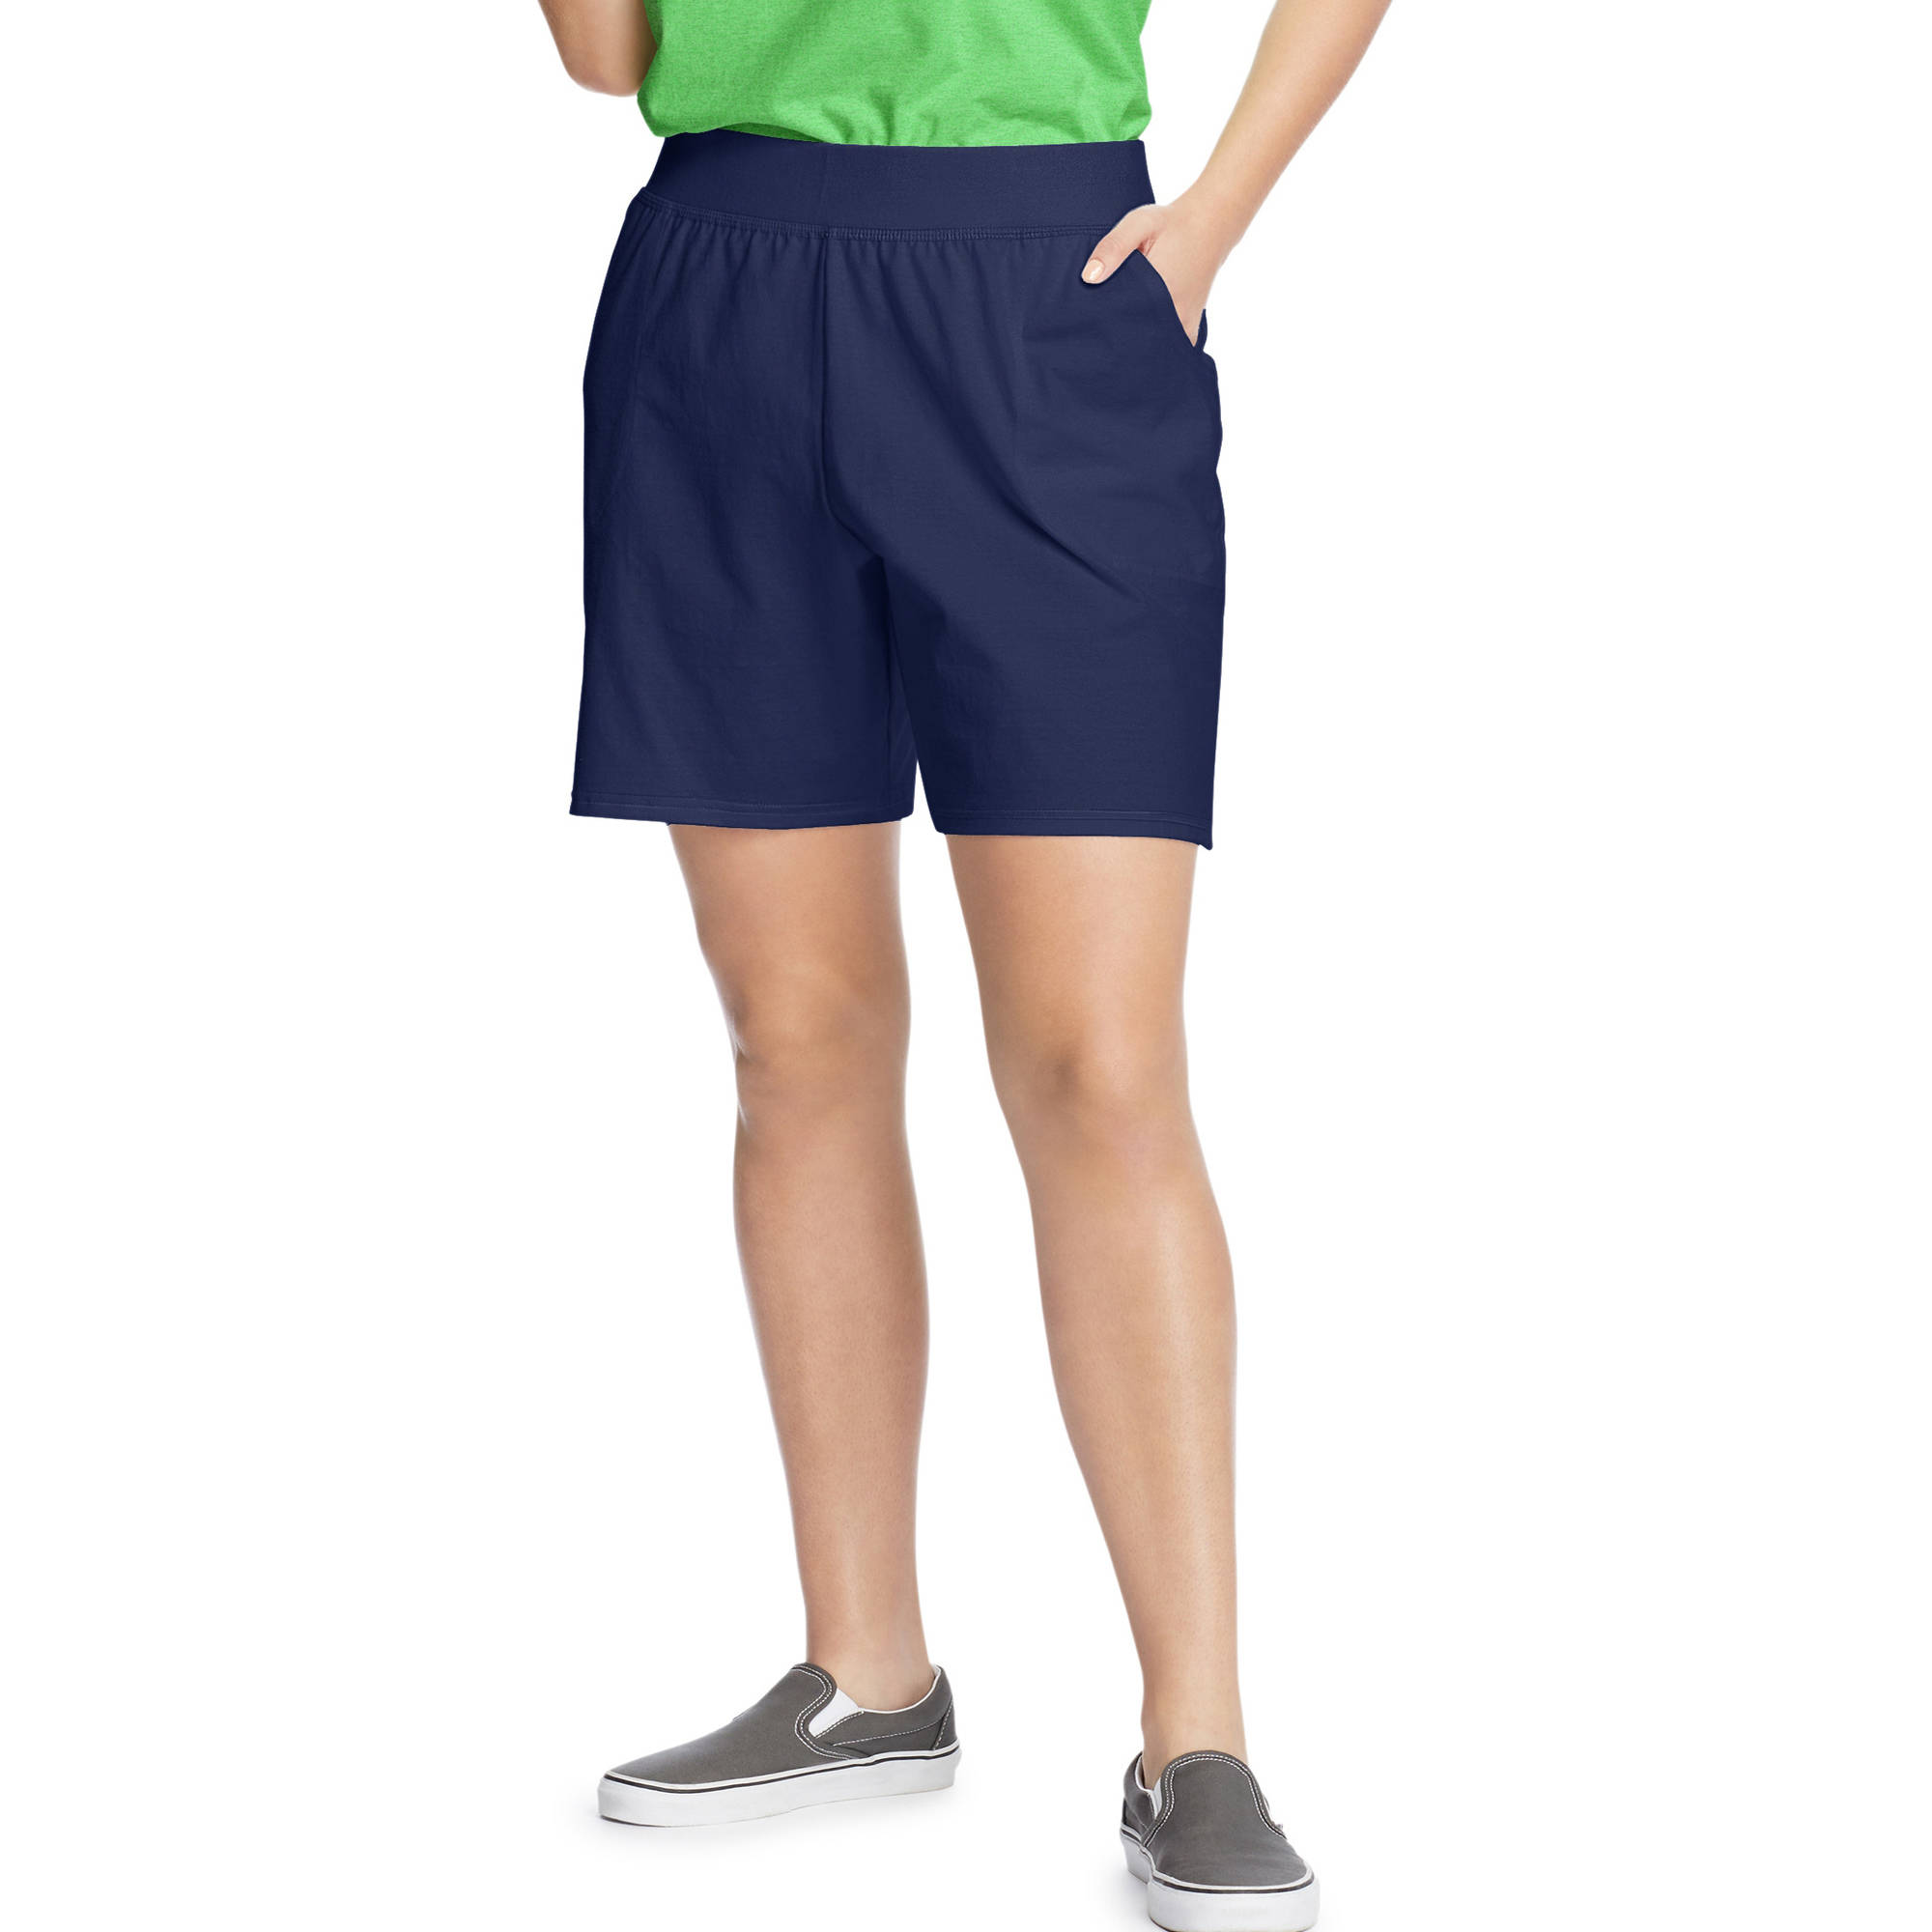 Just My Size Women's Plus Size Jersey Pocket Short, Up to size 5X